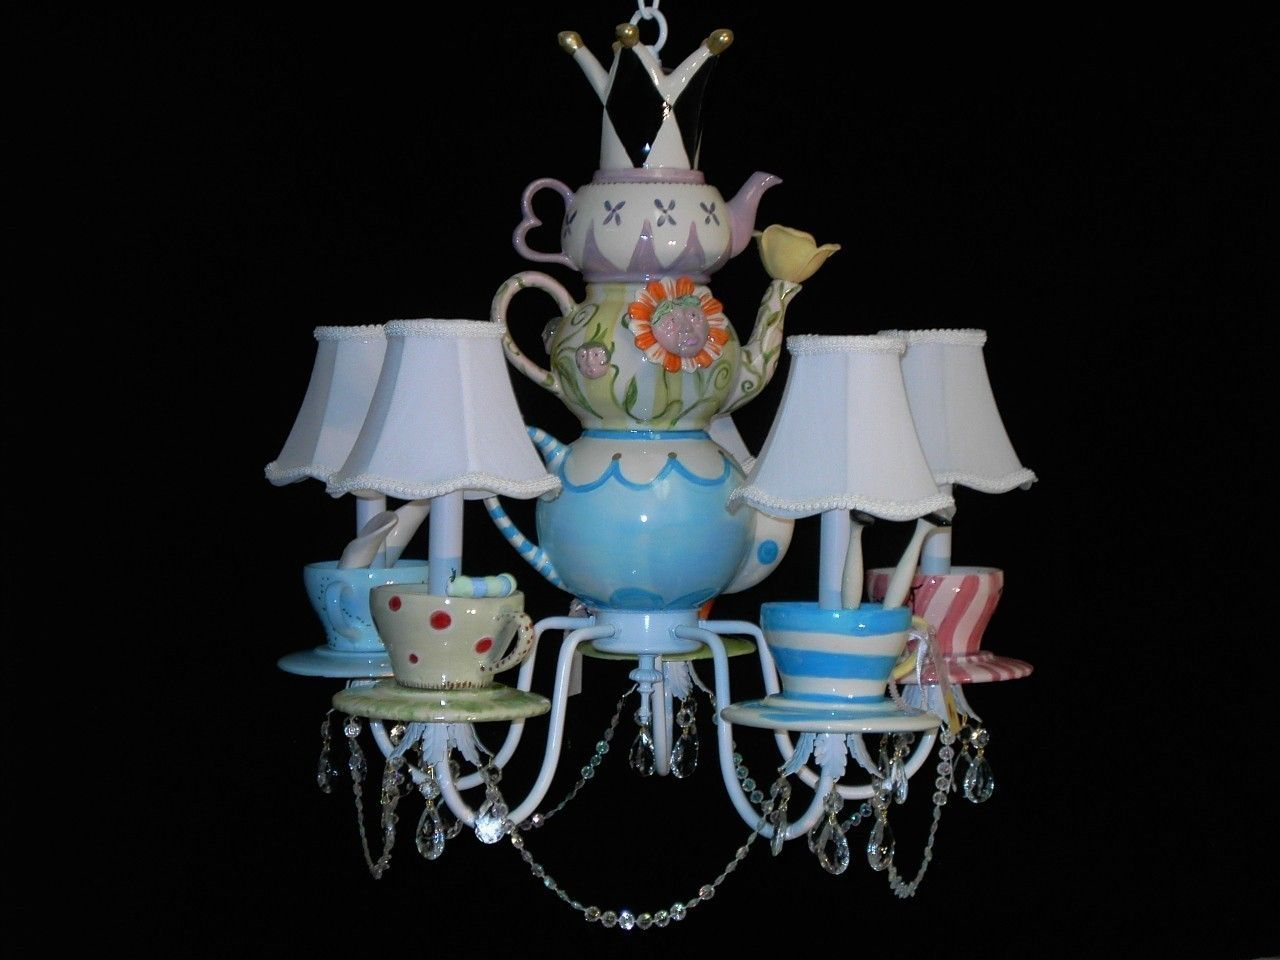 Whimsical alice in wonderland mad hatter tea party chandelier whimsical alice in wonderland mad hatter tea party chandelier 42500 via etsy arubaitofo Choice Image